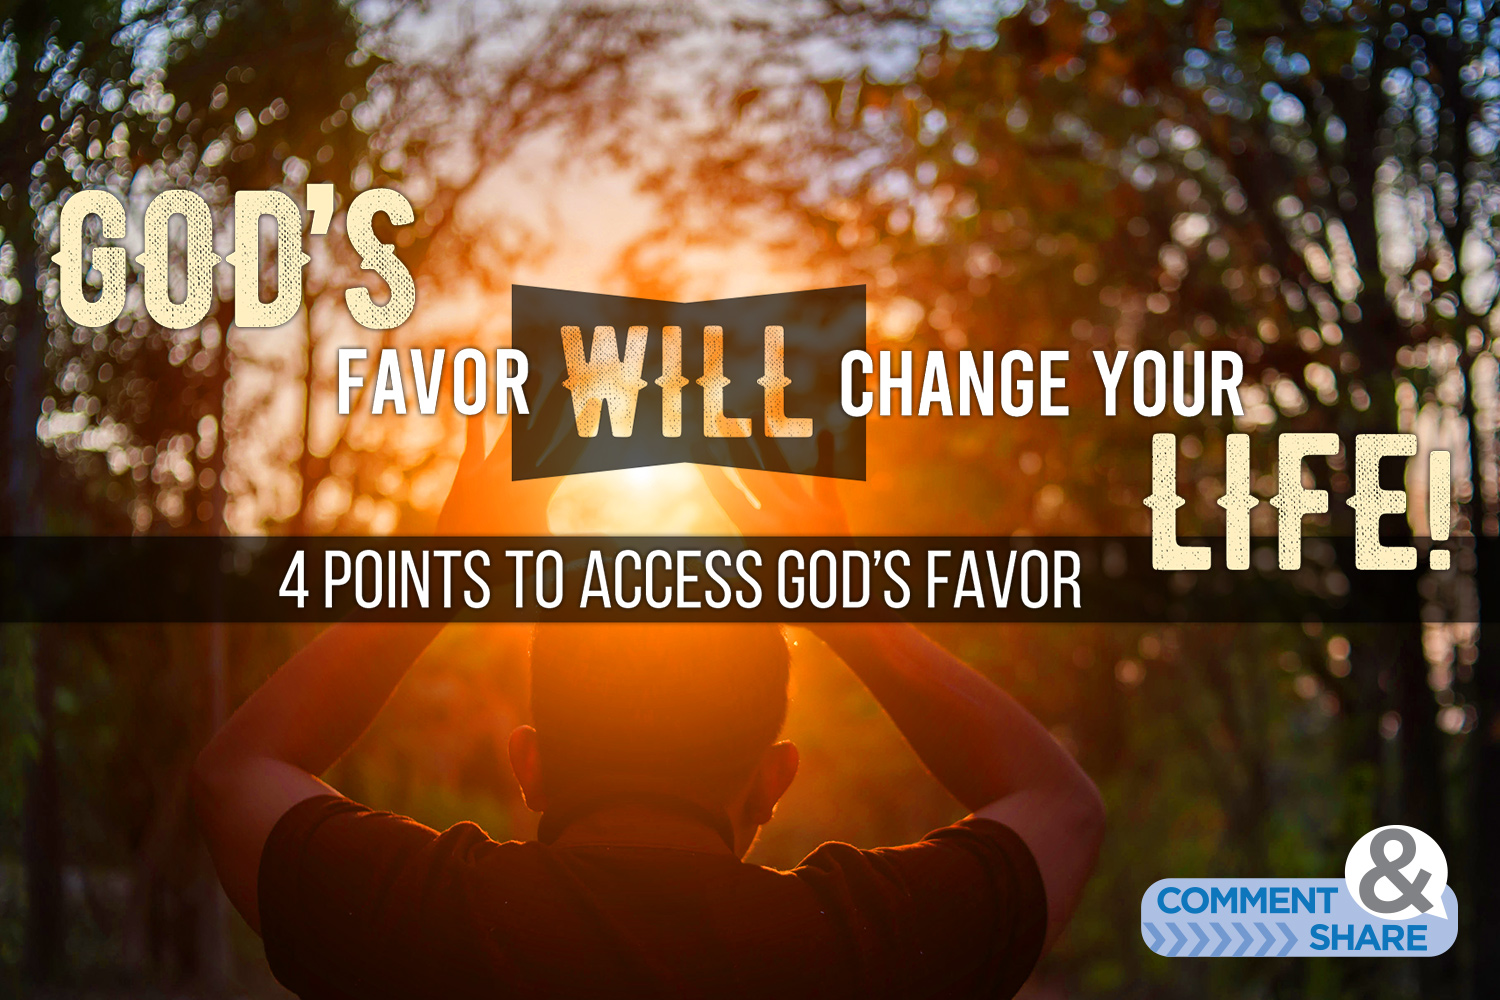 The Favor of God will change your life